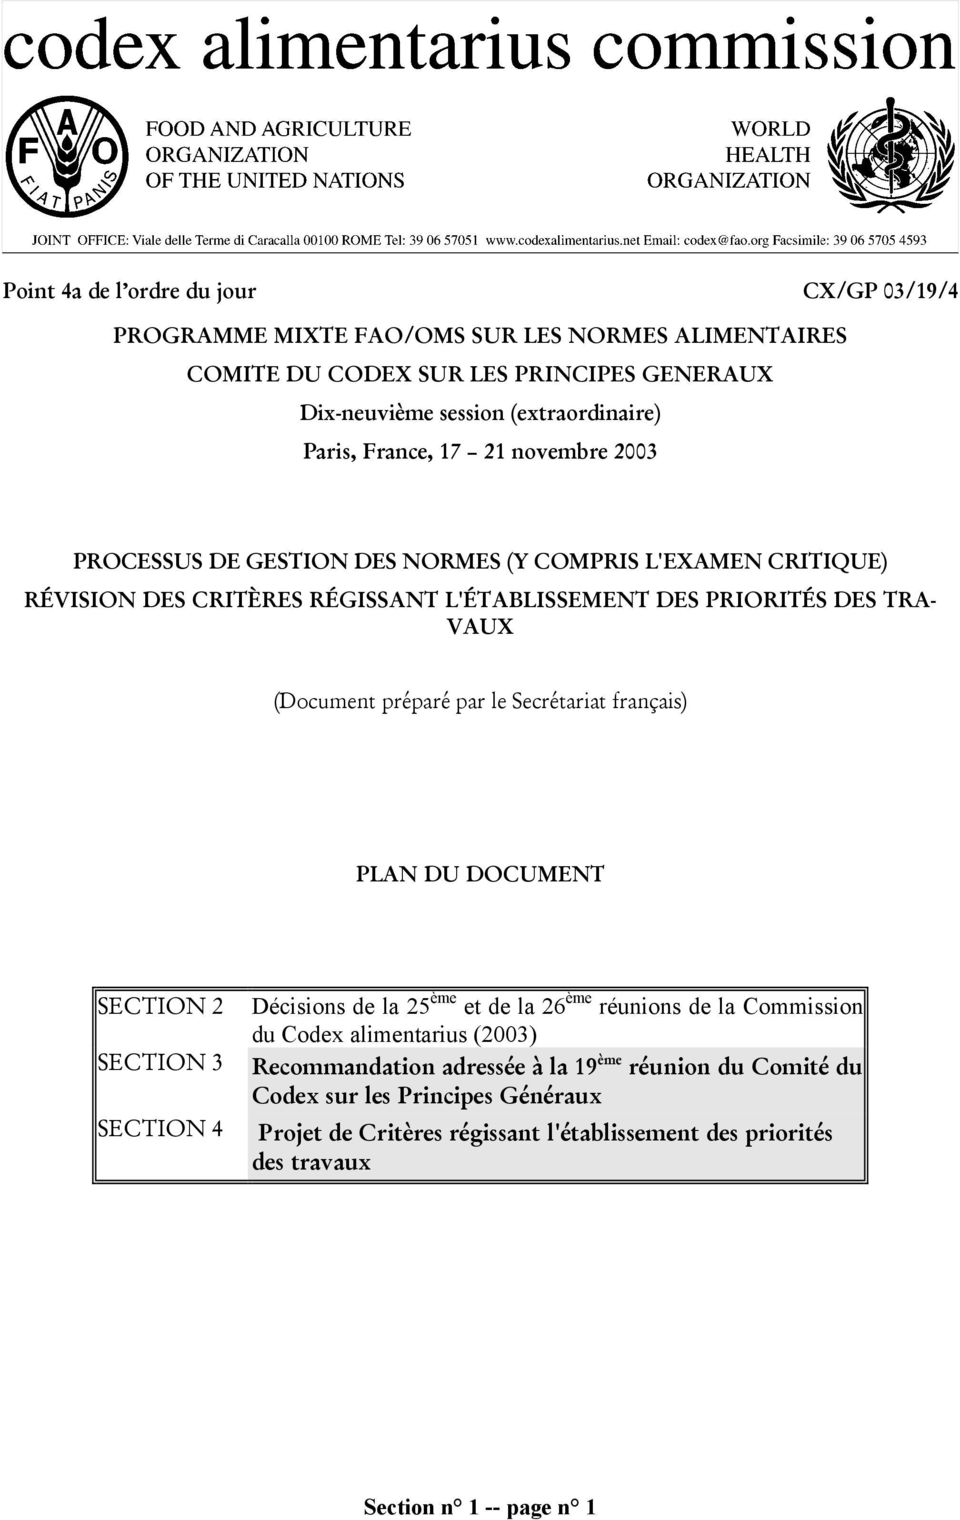 (Document préparé par le Secrétariat français) PLAN DU DOCUMENT SECTION 2 Décisions de la 25 ème et de la 26 ème réunions de la Commission du Codex alimentarius (2003) SECTION 3